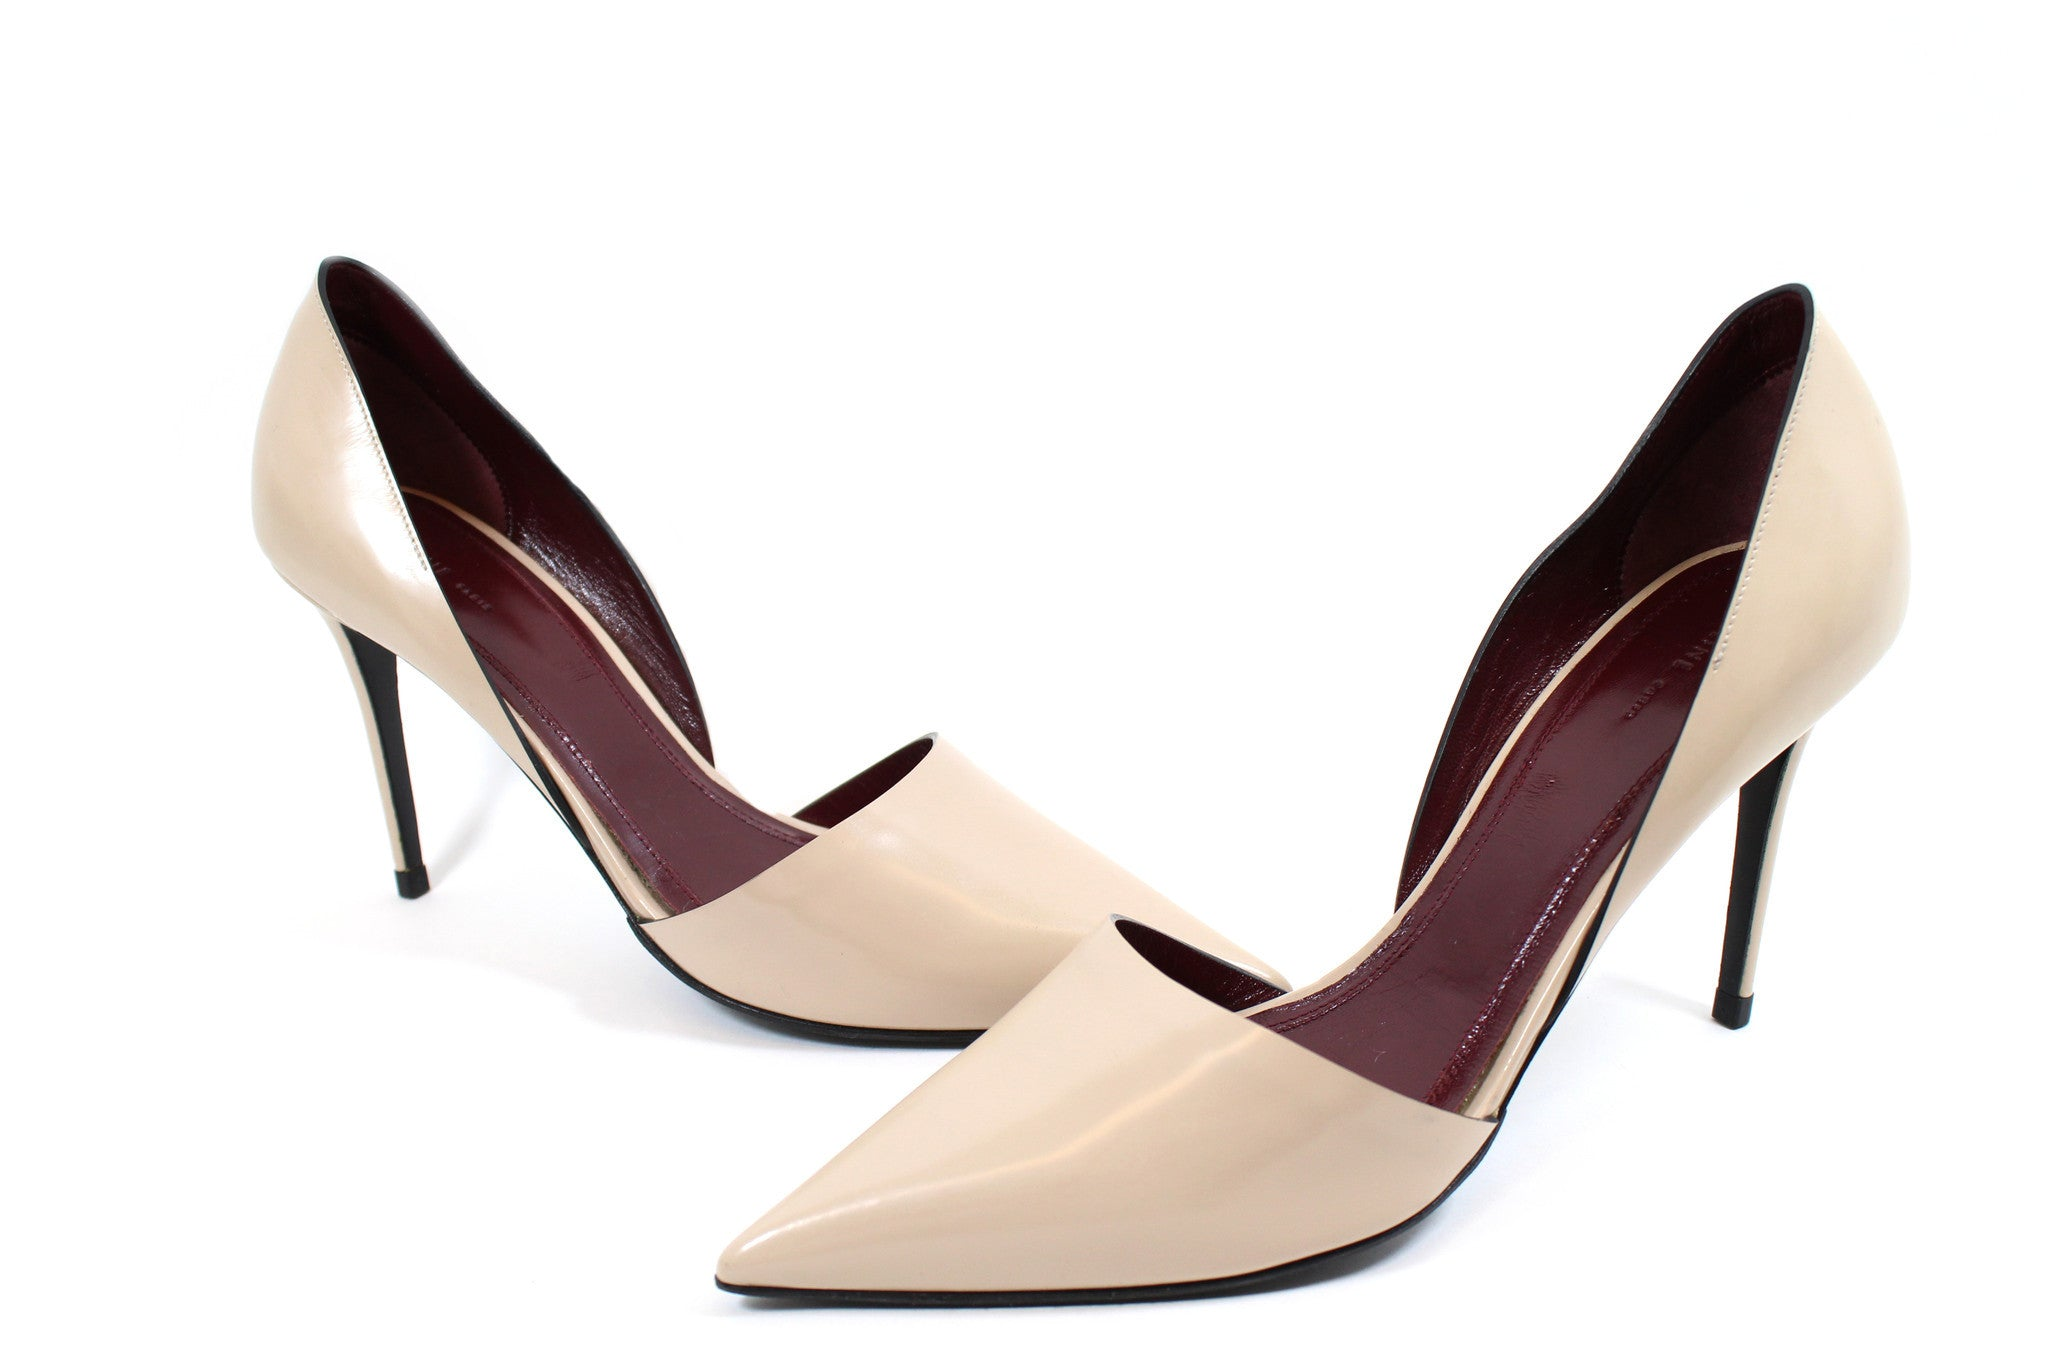 Céline Nude d'Orsay Pointed Toe Pumps (Size 38.5)